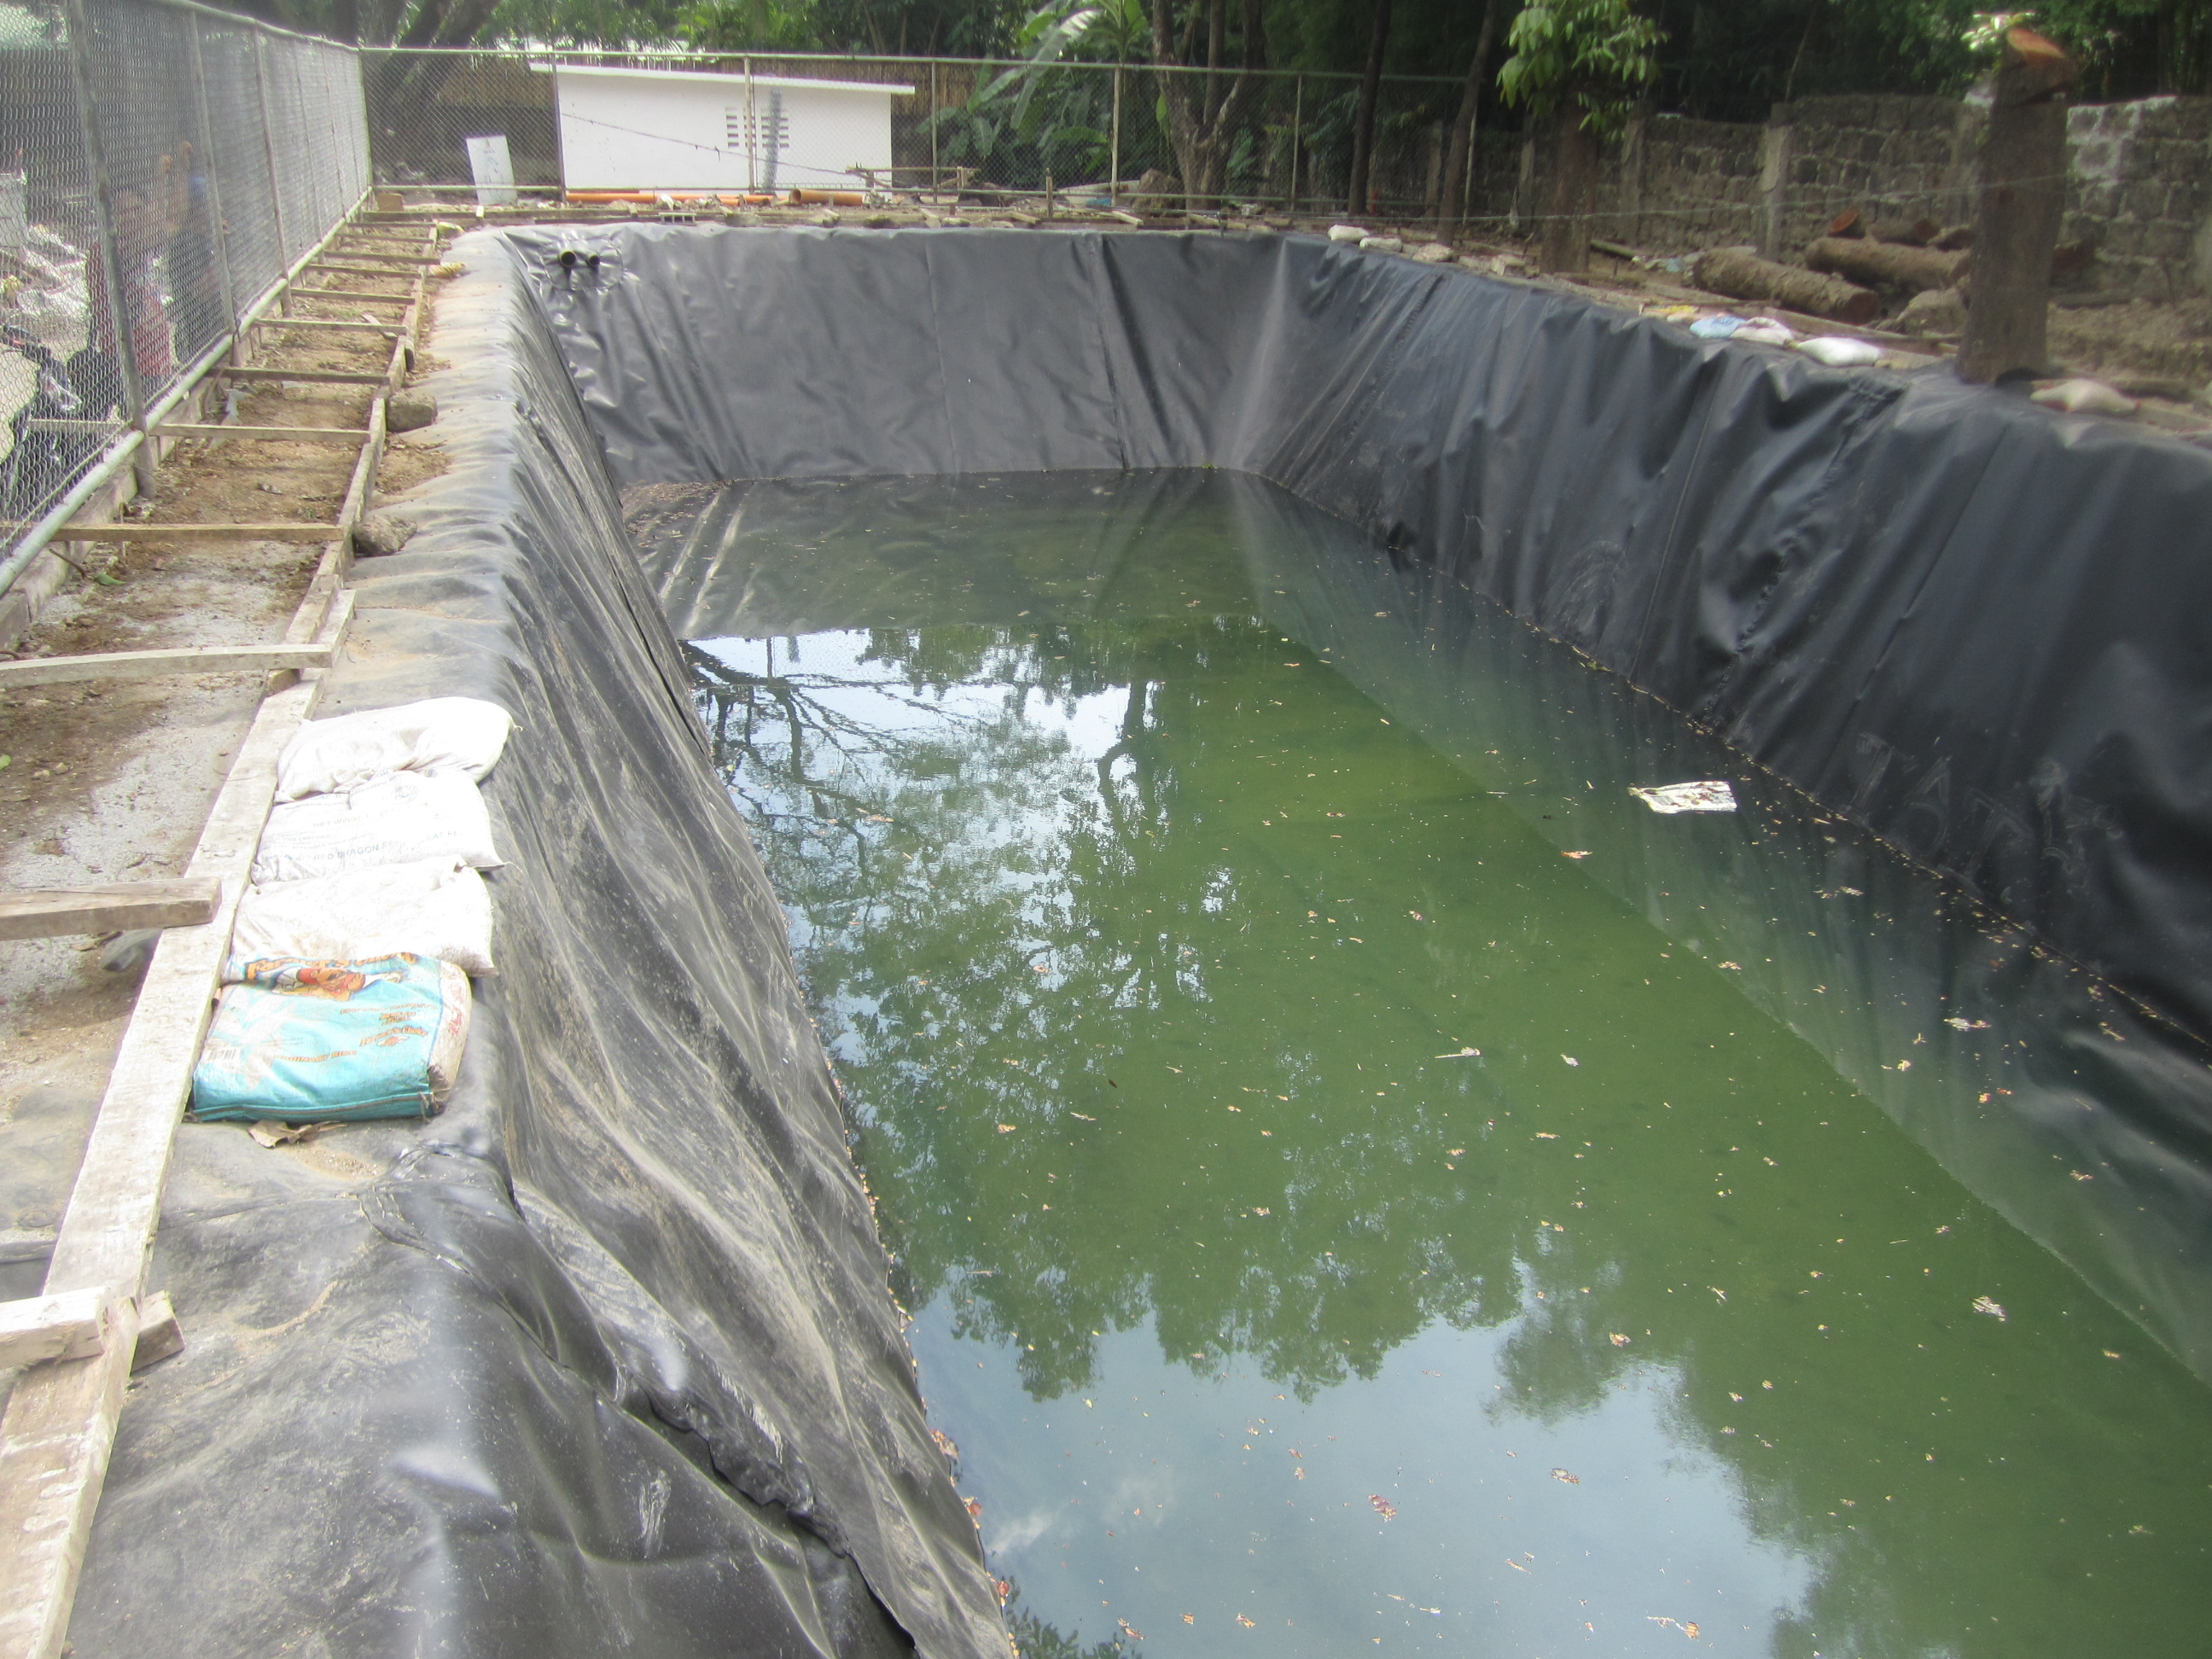 Pond liner fabrimetrics philippines inc for Koi pond liner